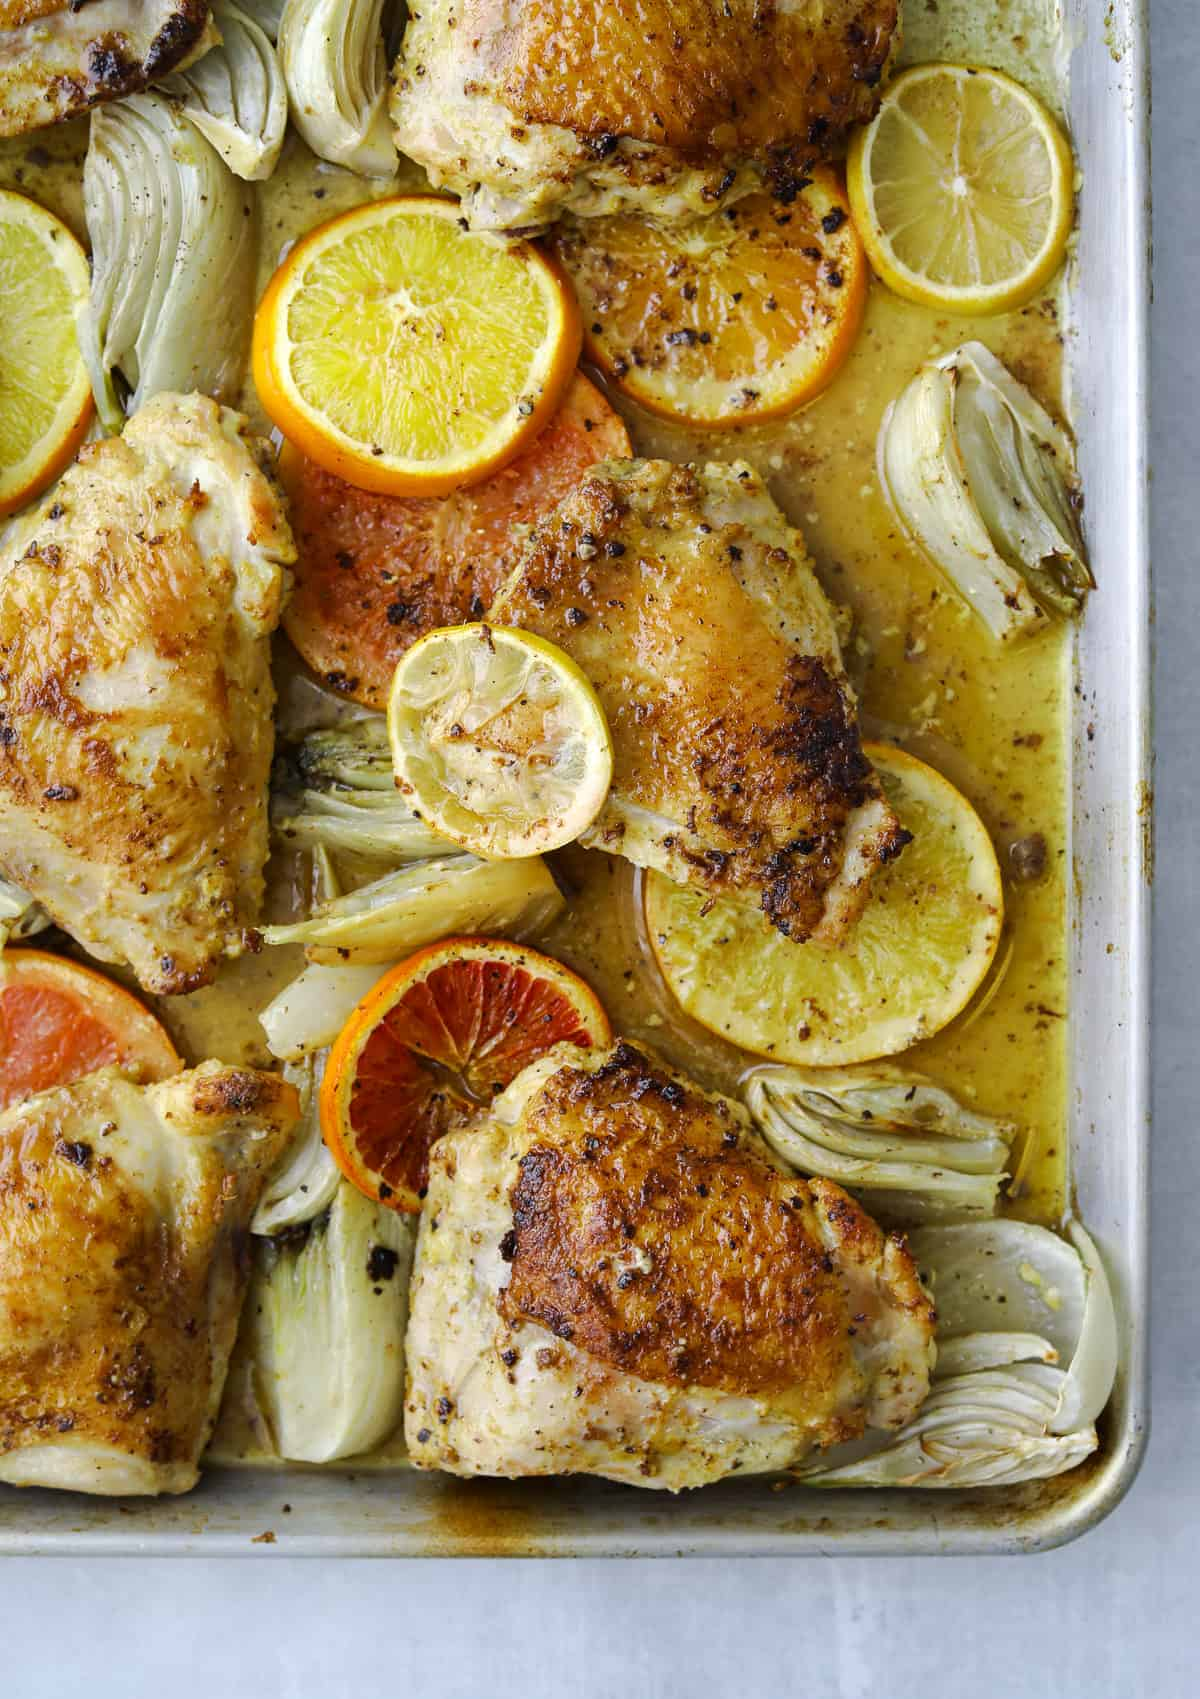 golden brown roasted chicken thighs with citrus, fennel, olive oil on a baking tray